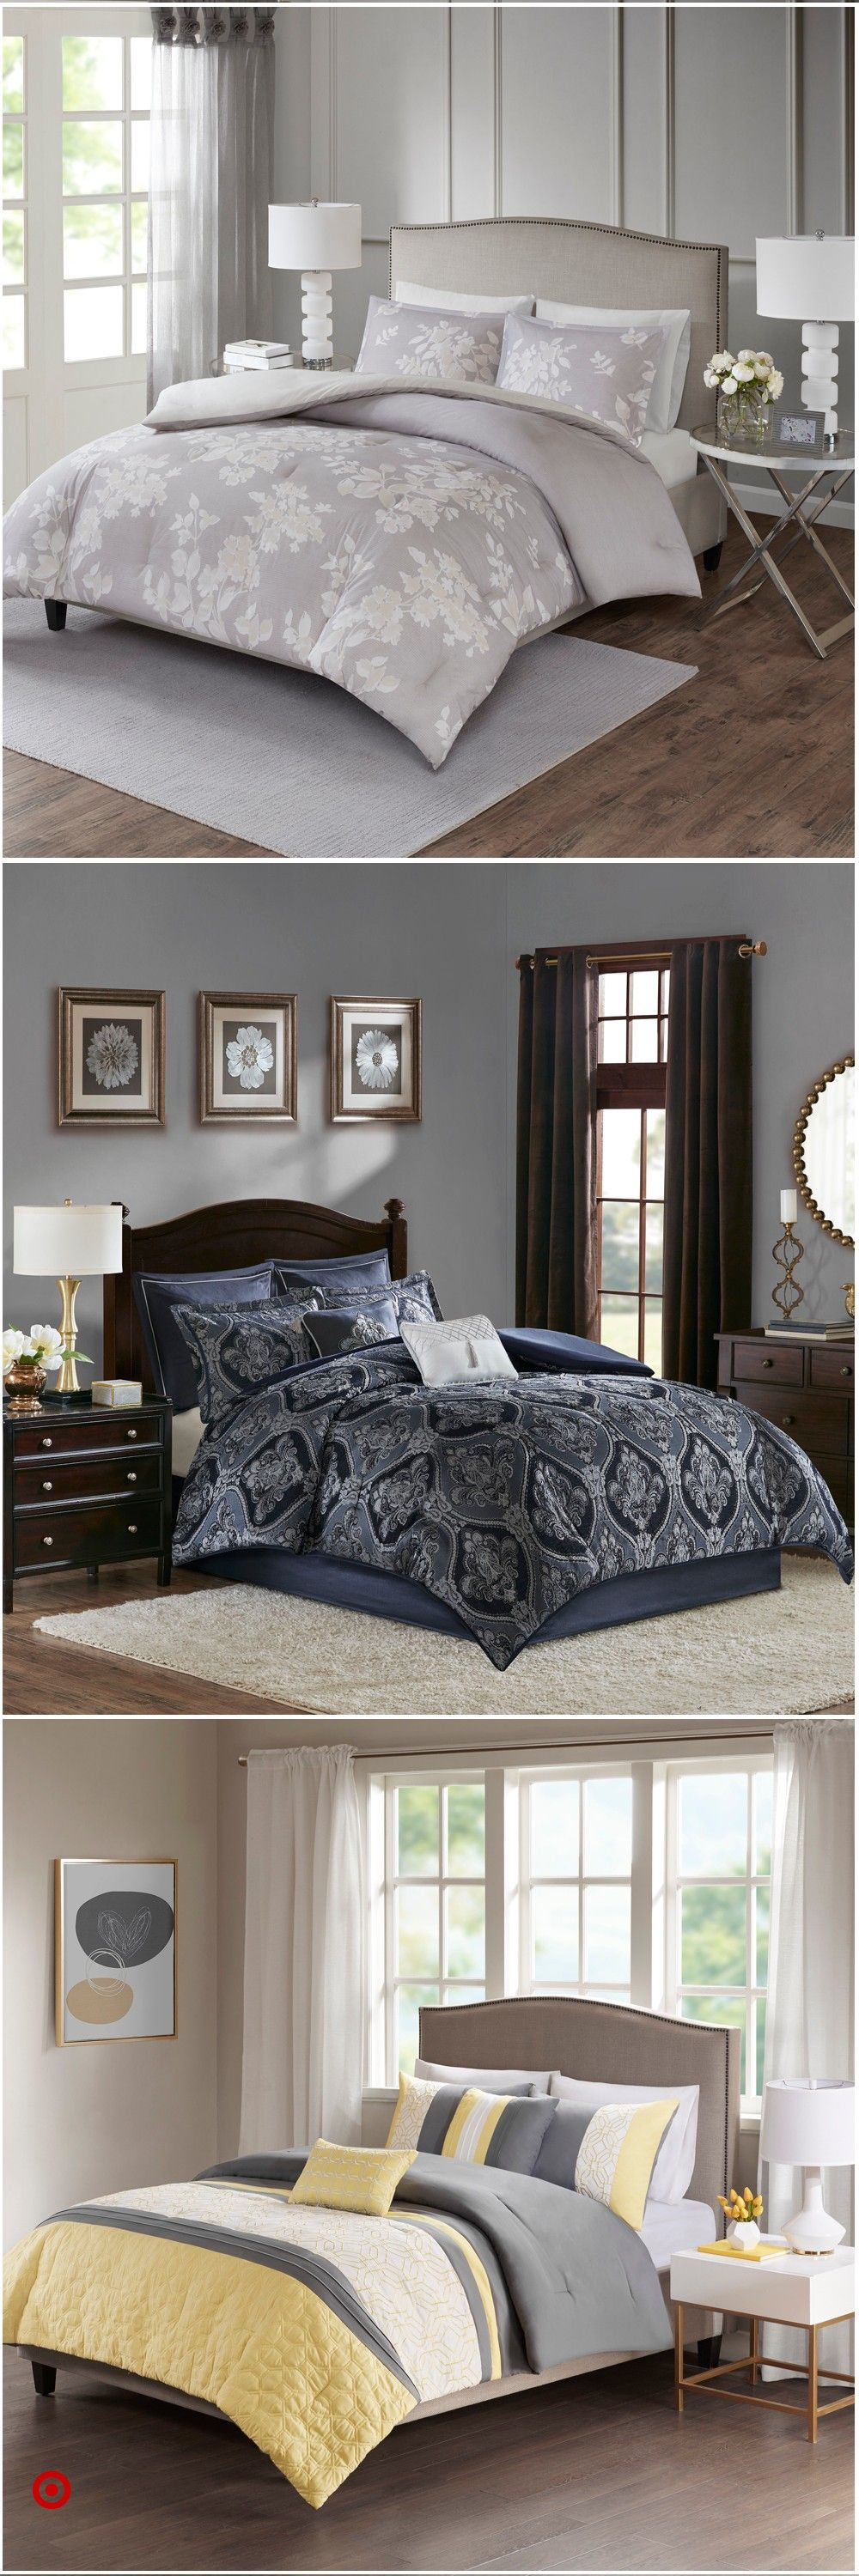 shop target for comforter & set you will love at great low